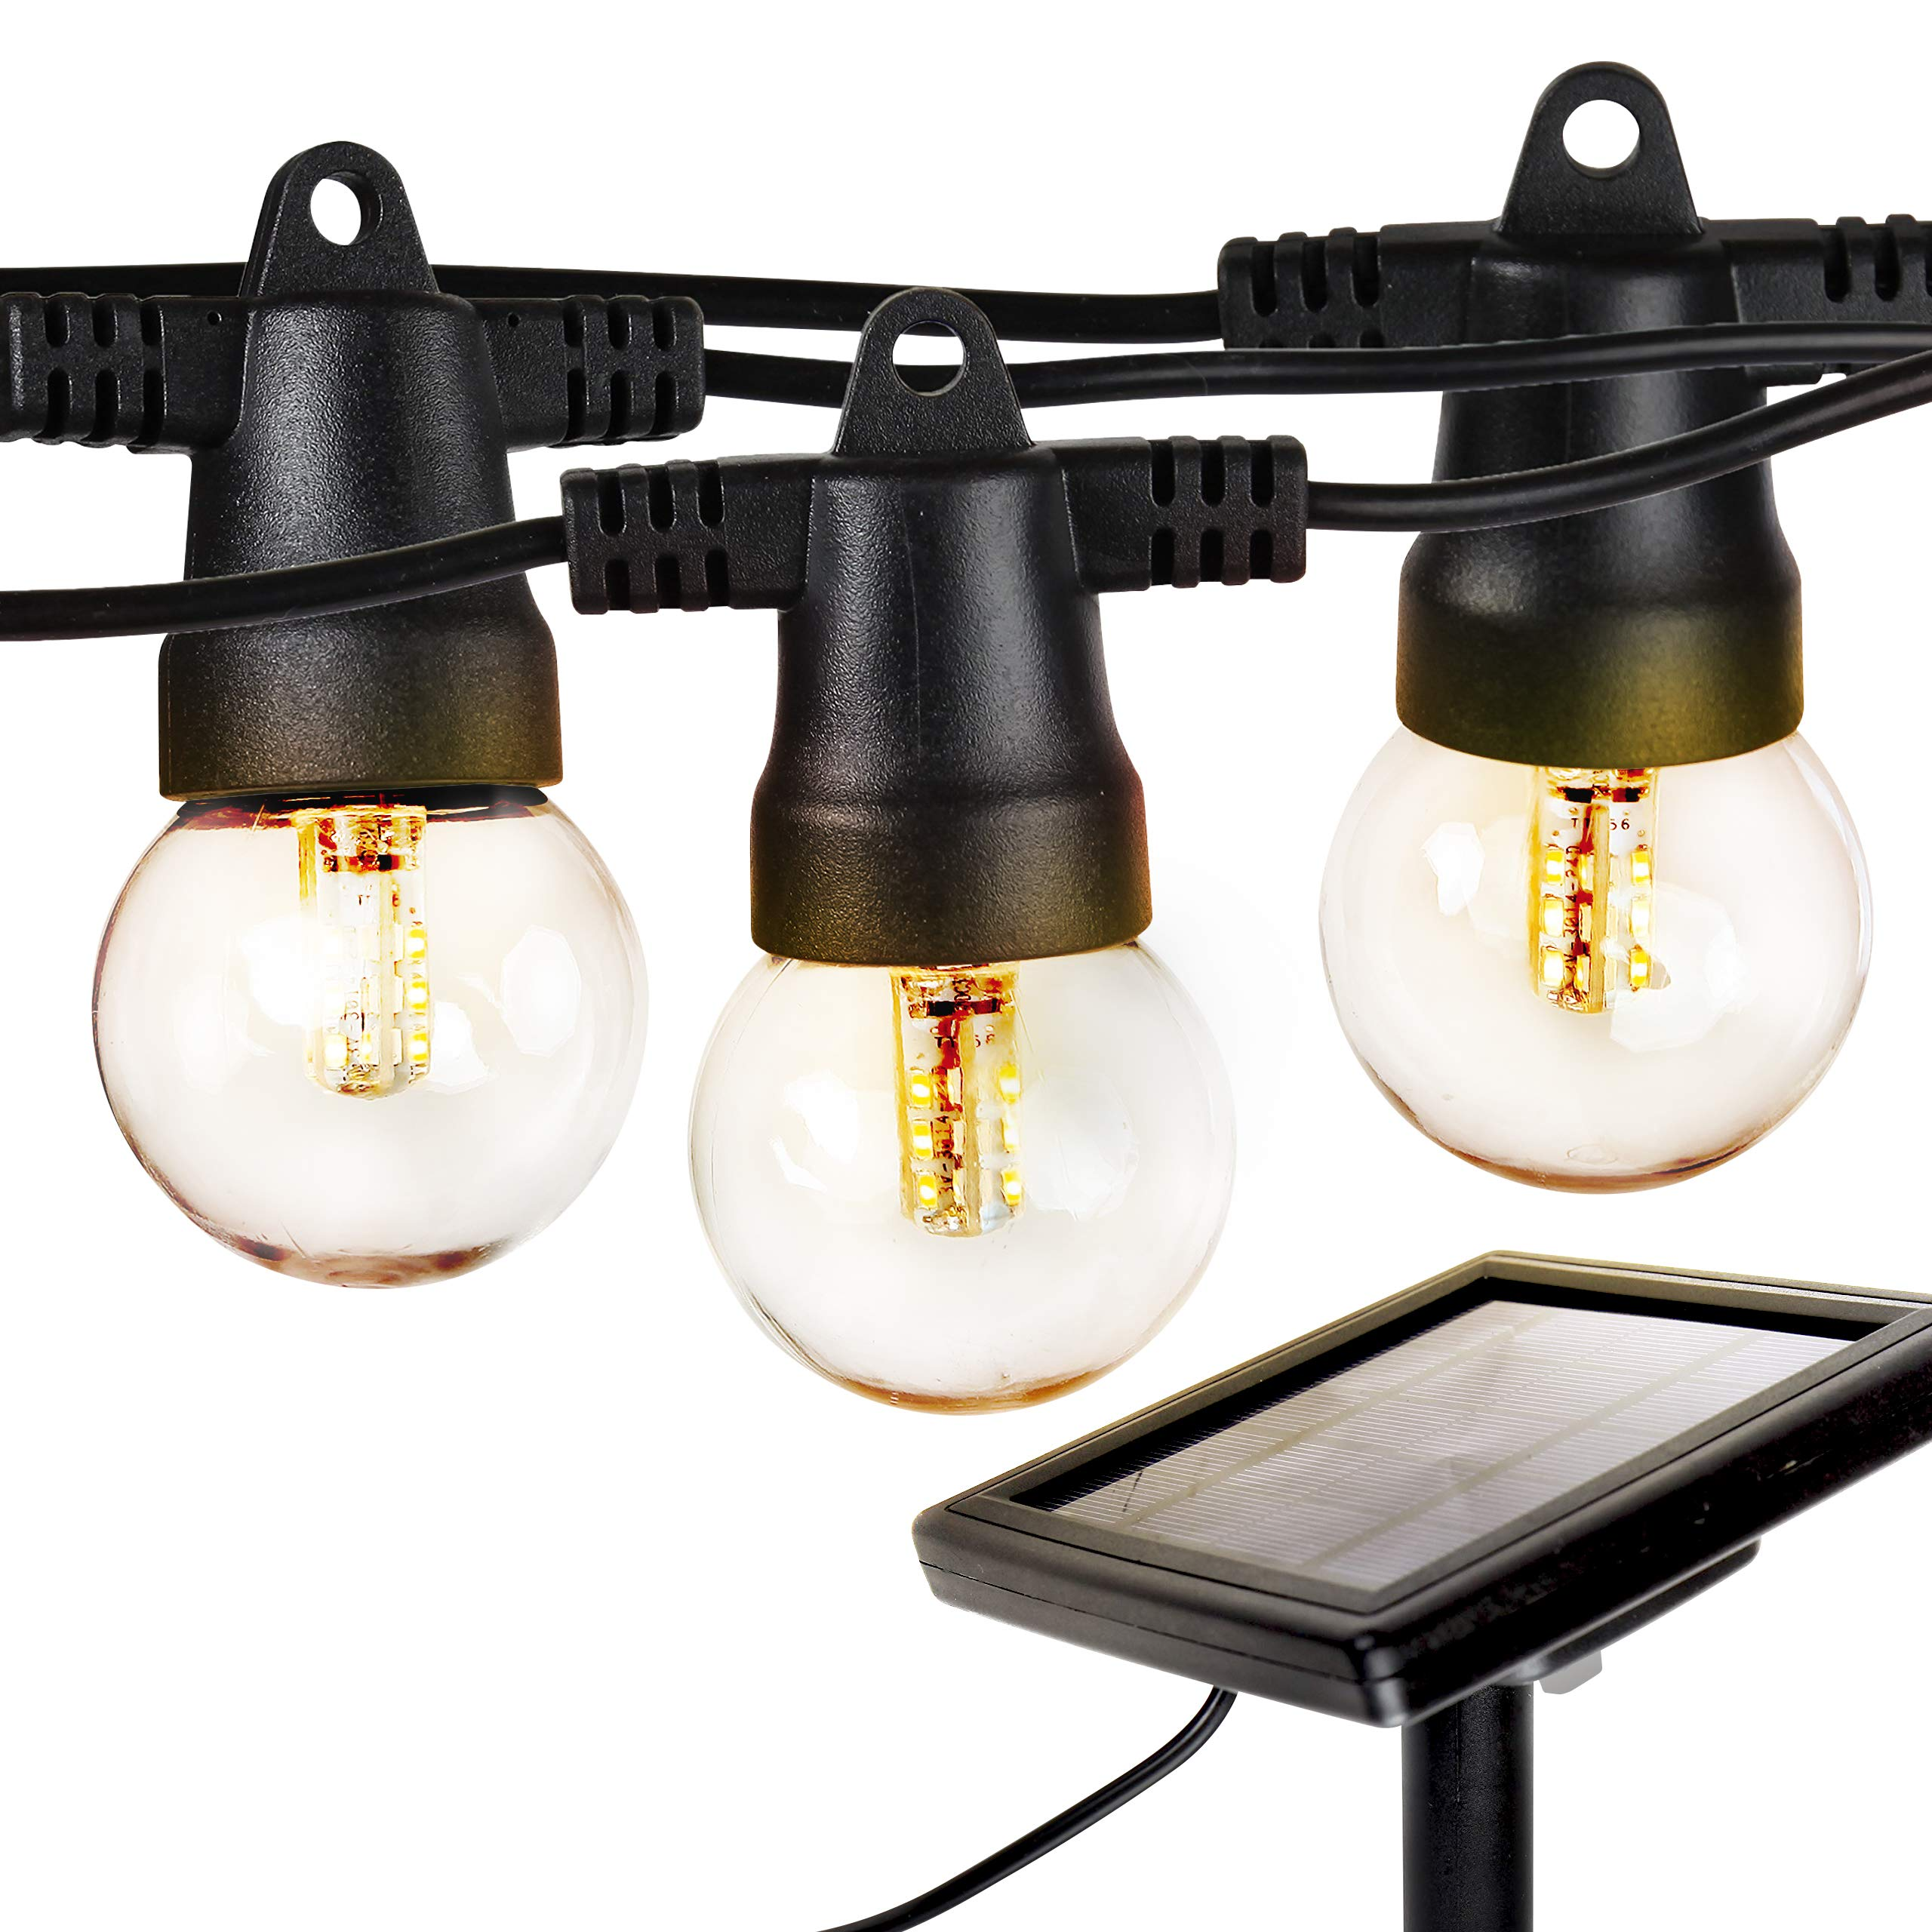 8928b13af8e Brightech Ambience Pro - Waterproof Solar LED Outdoor String Lights –  Hanging 1W Retro Edison Filament